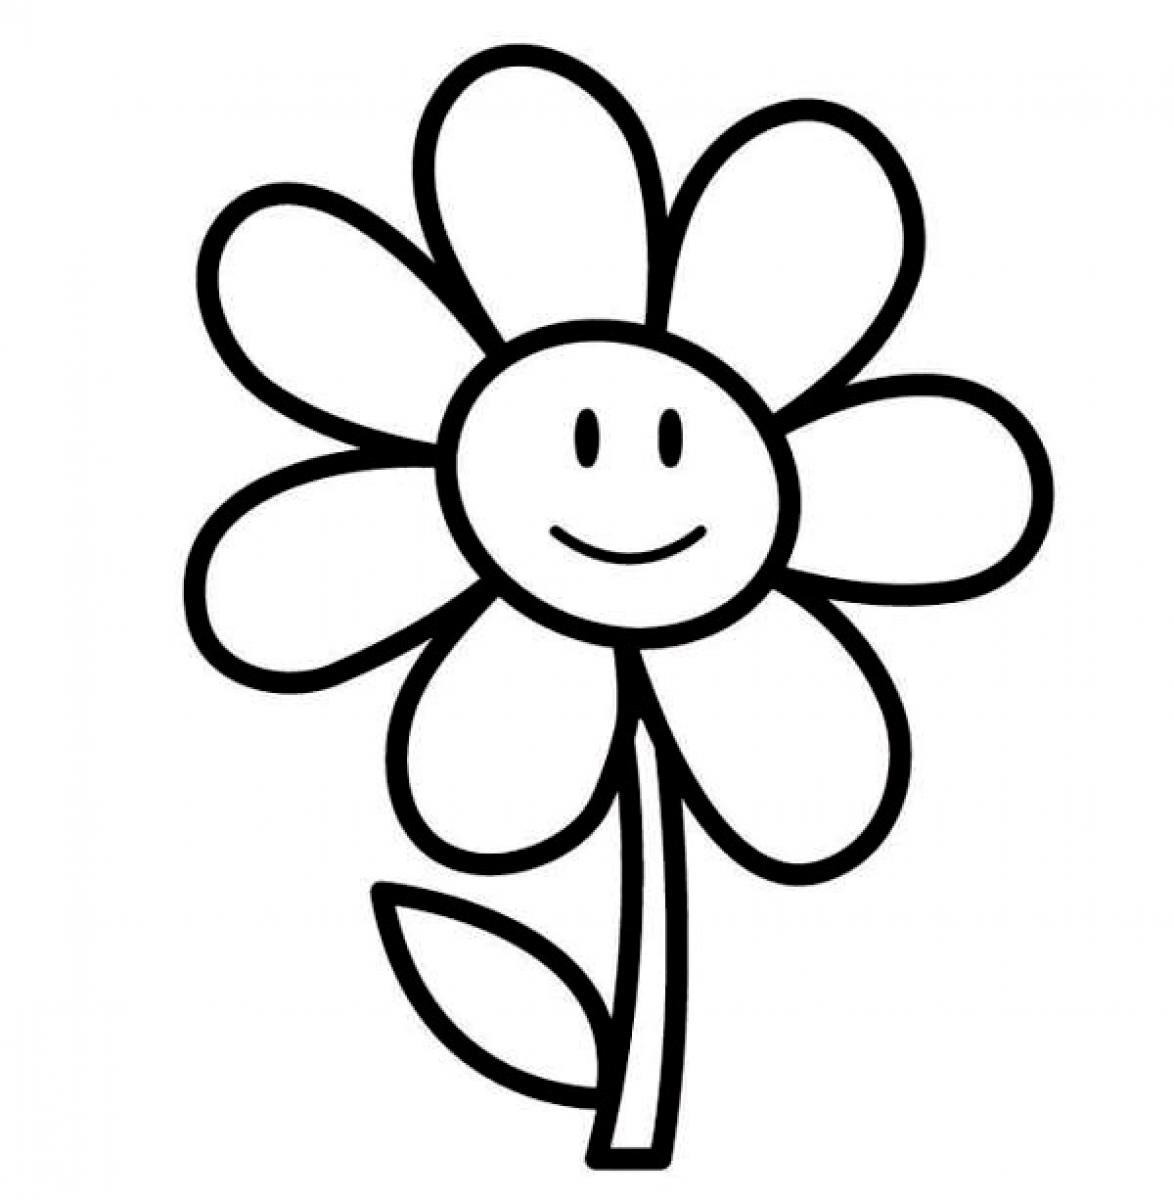 1174x1200 Flowers Drawing Easy Kids Simple Rose Drawings In Pencil